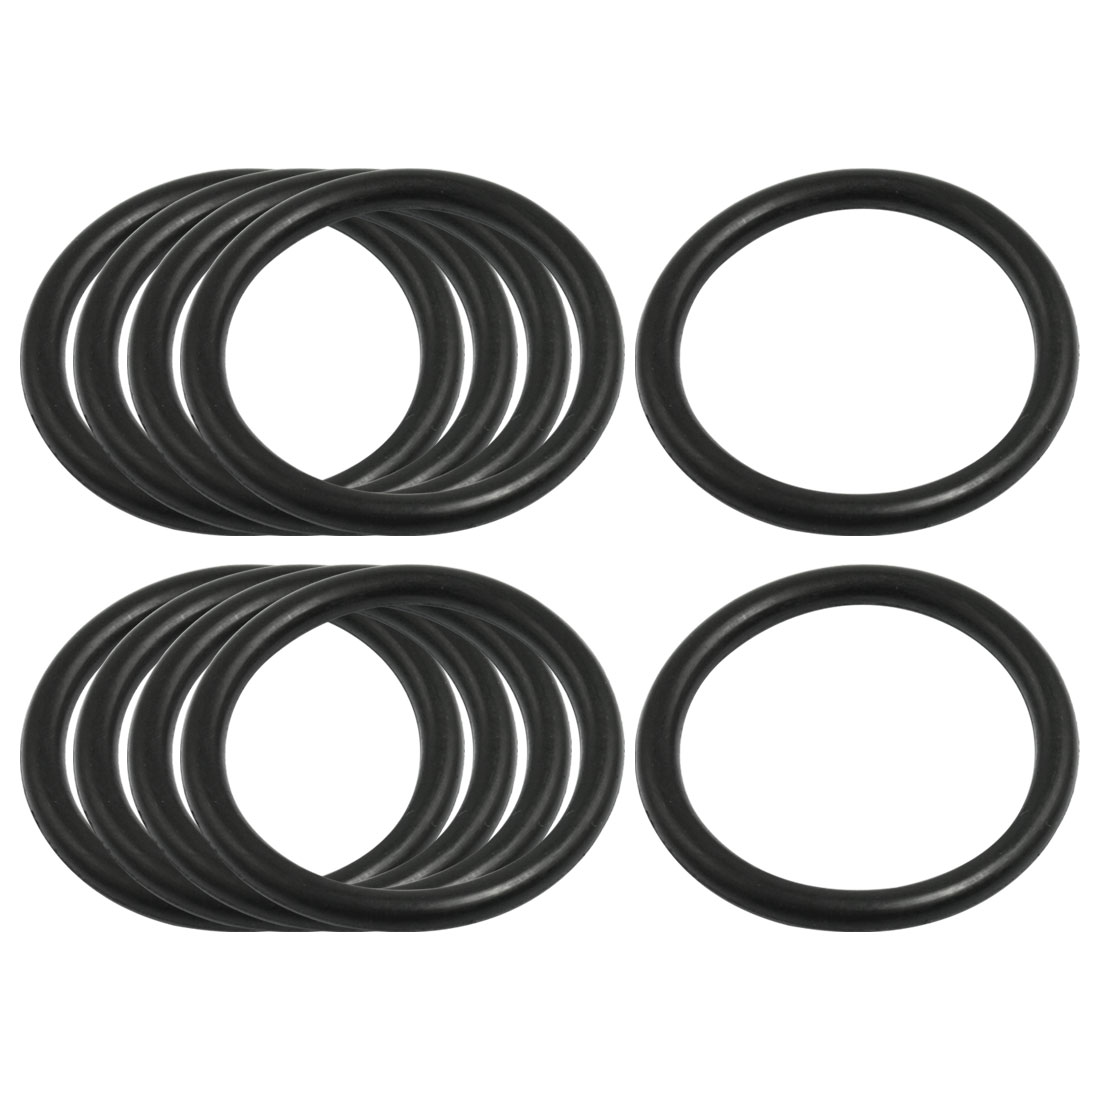 4mm x 41mm Black Nitrile Rubber Sealing O Ring Seal Washer Grommets 10 Pcs